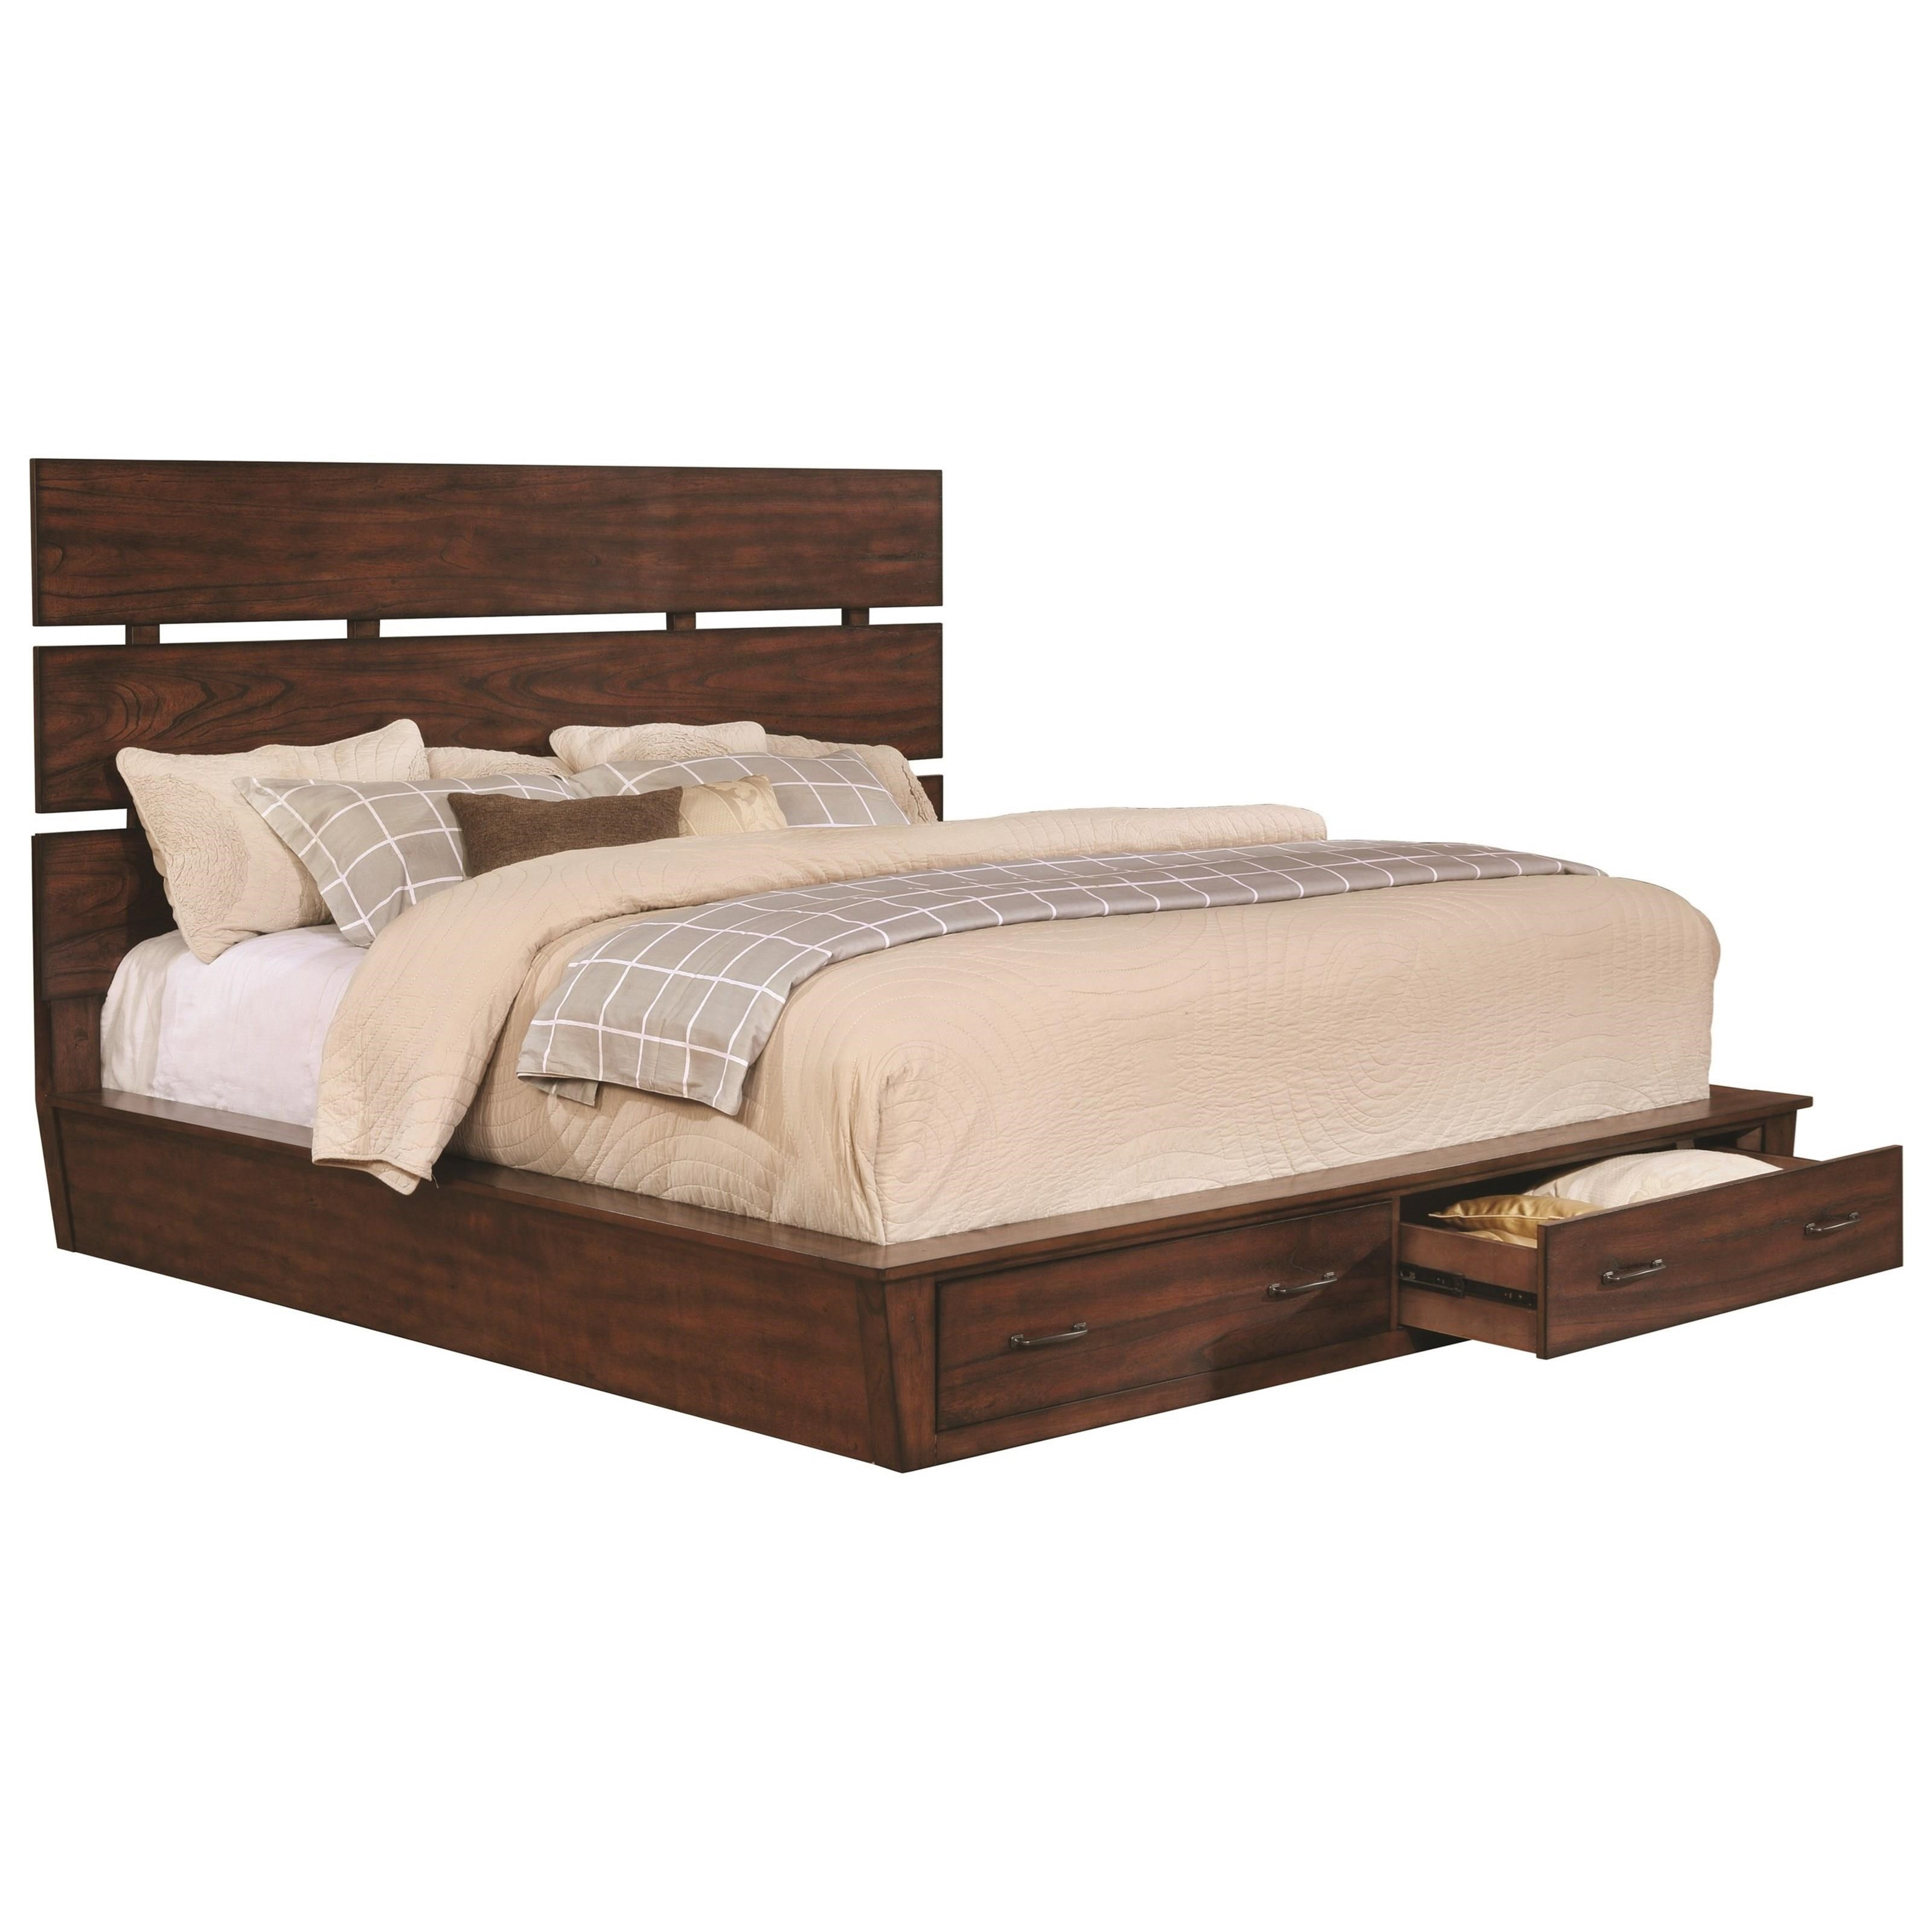 Scott Living Artesia Cal King Storage Bed - Item Number: 204470KW